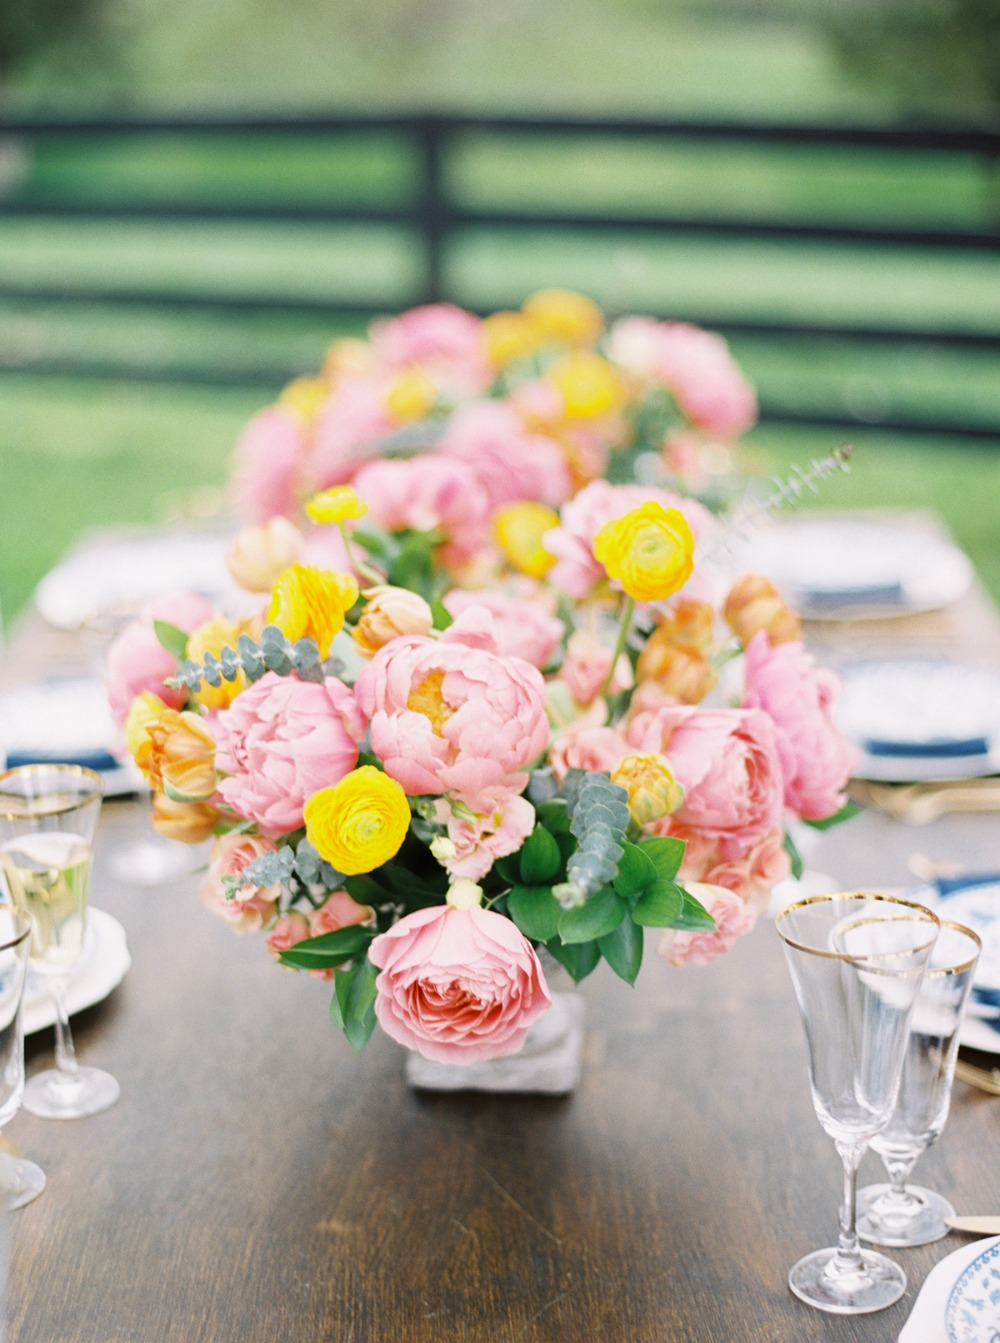 springtime centerpiece idea